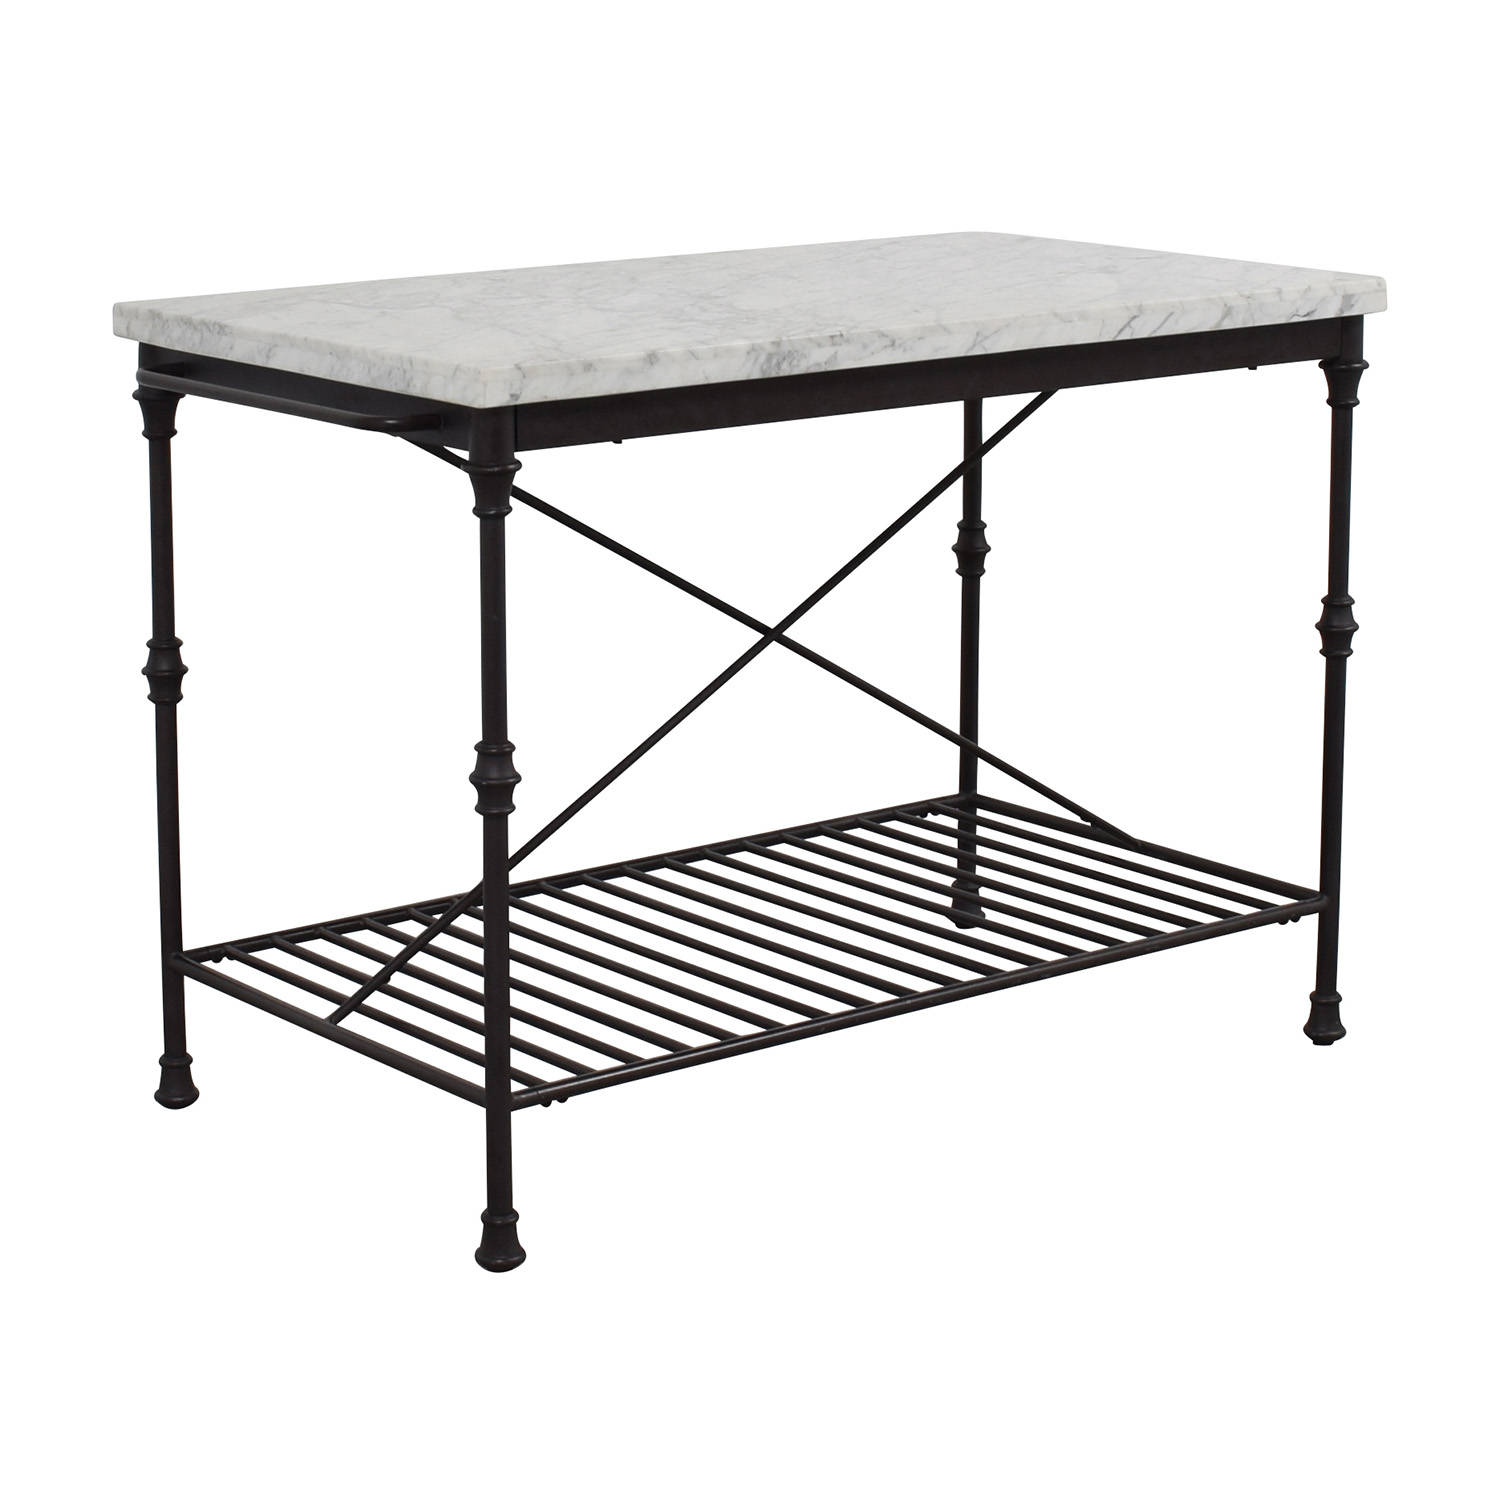 ... Crate U0026 Barrel Crate U0026 Barrel French Kitchen Island Second ...